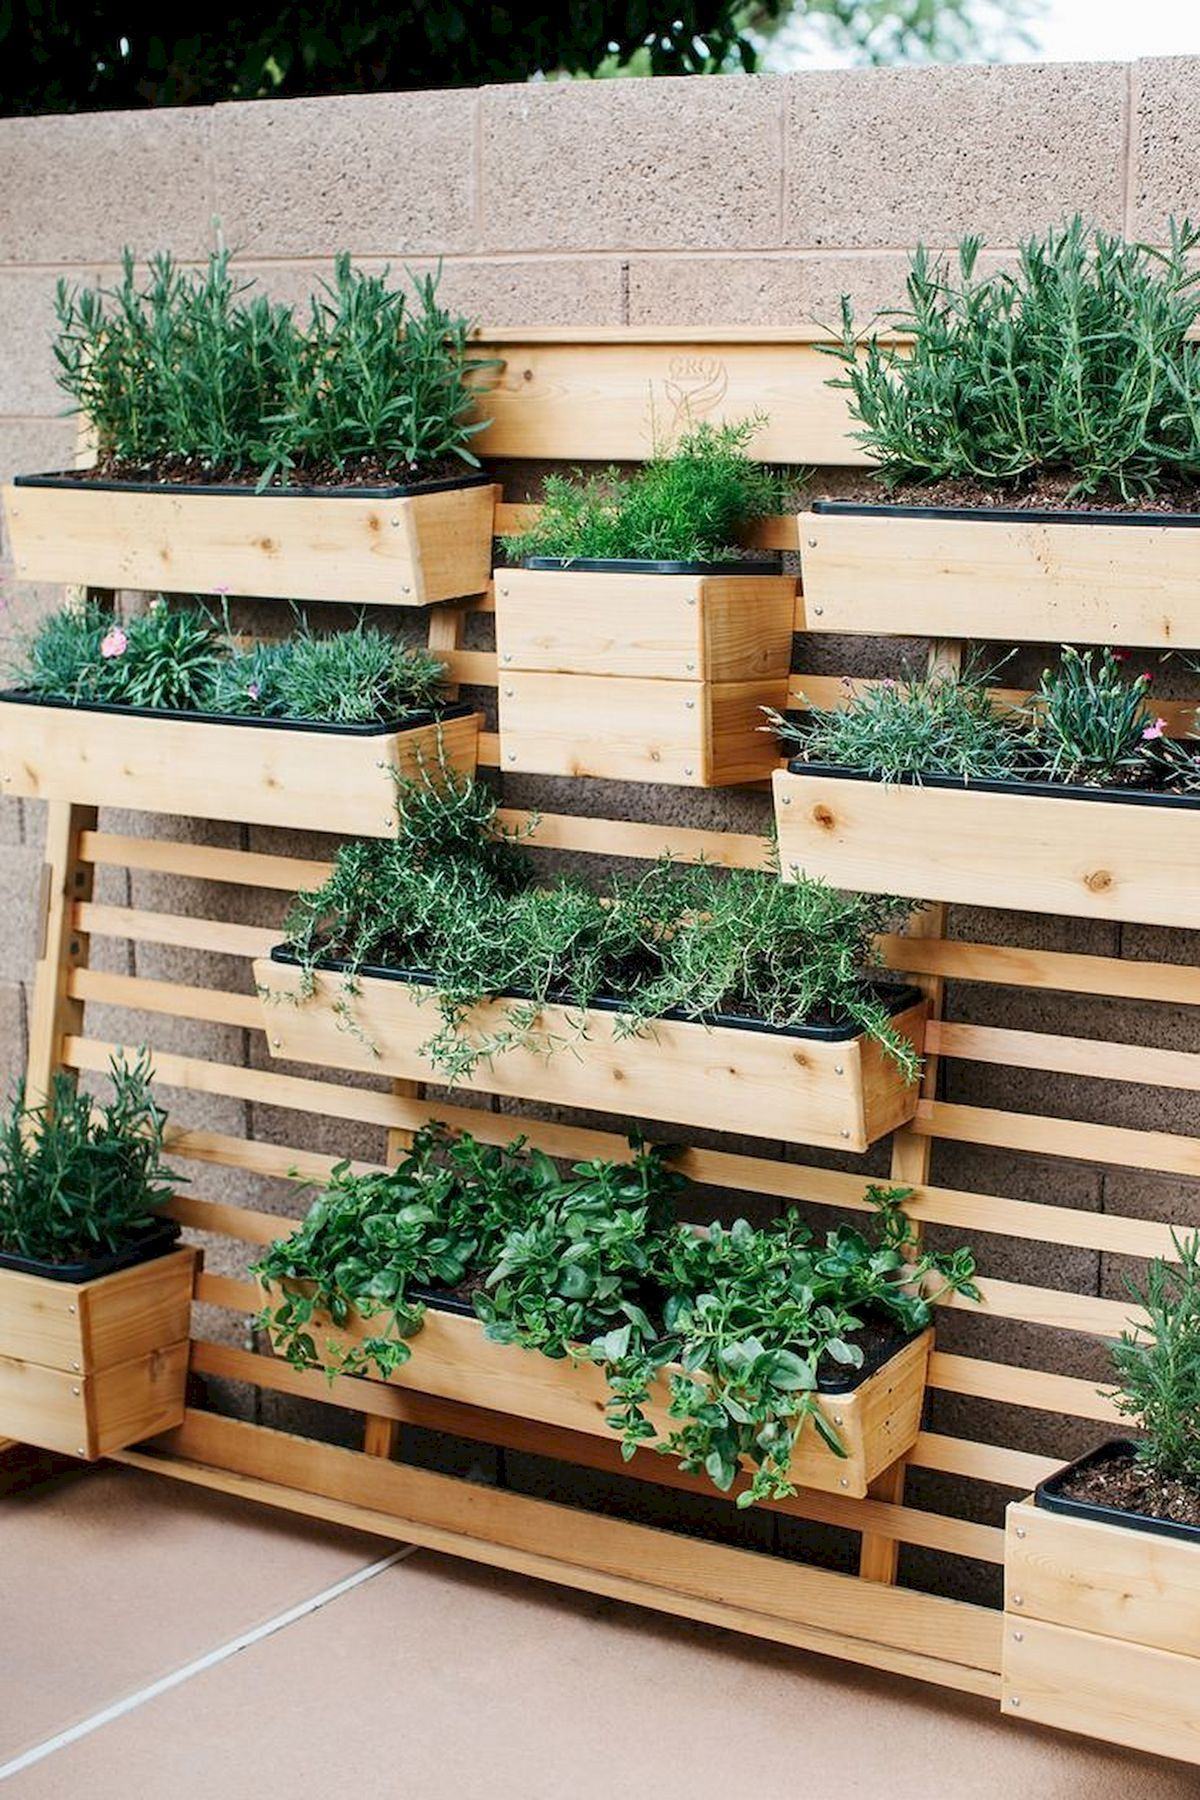 20 Fascinating Diy Box Plant Ideas For Front Porch Design Your